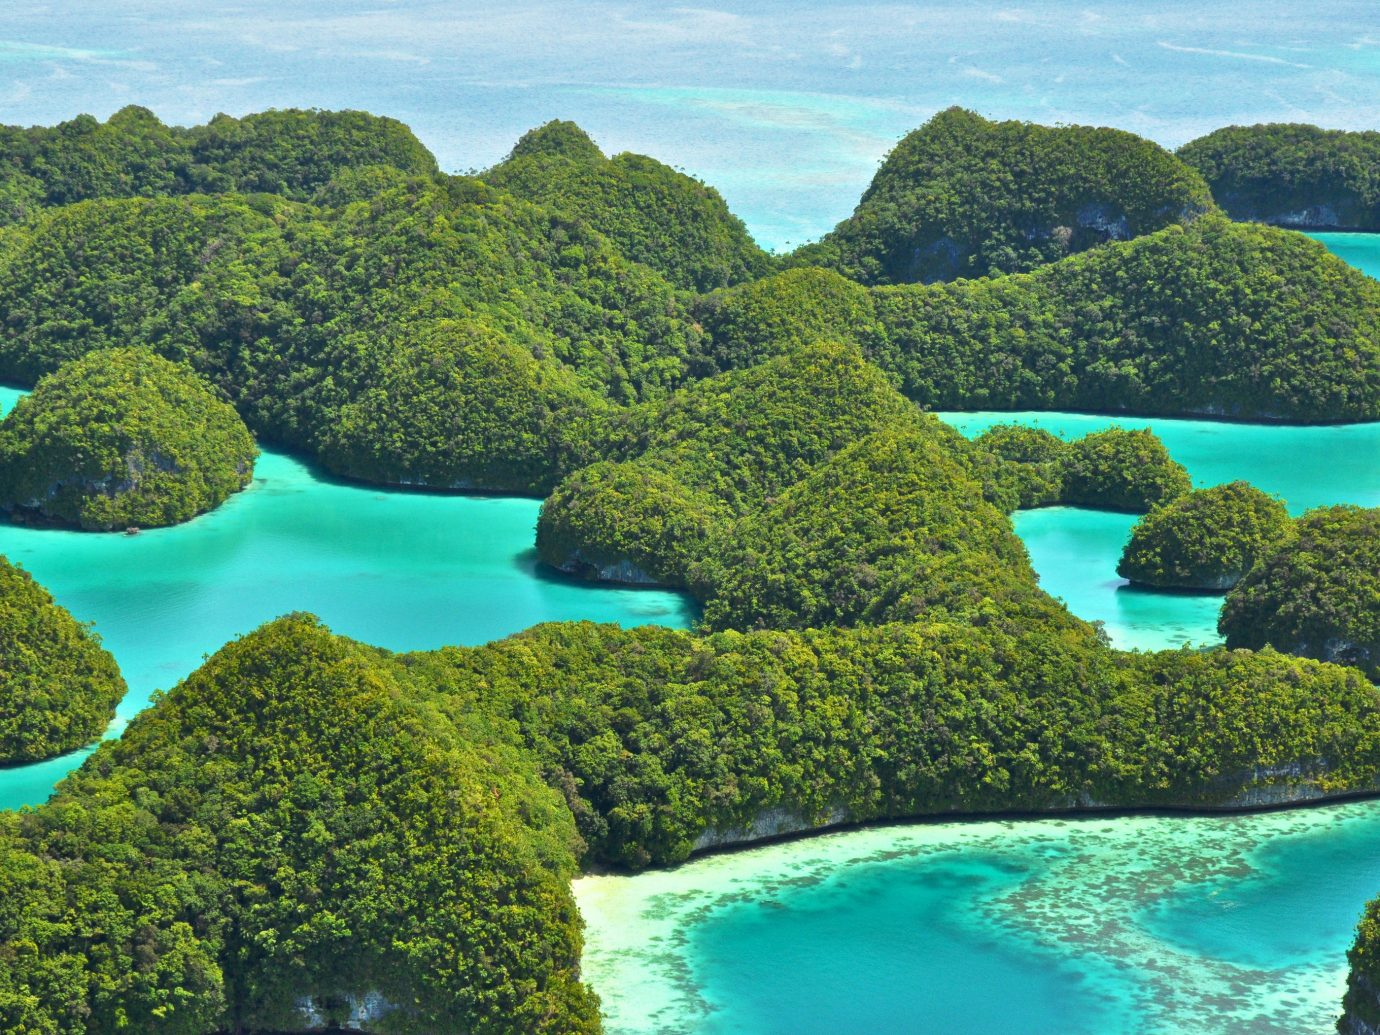 Offbeat water reef umbrella archipelago Nature vegetation outdoor green tree ecosystem Sea islet Coast bay Island Lagoon coral reef tropics aerial photography Jungle Garden colored swimming